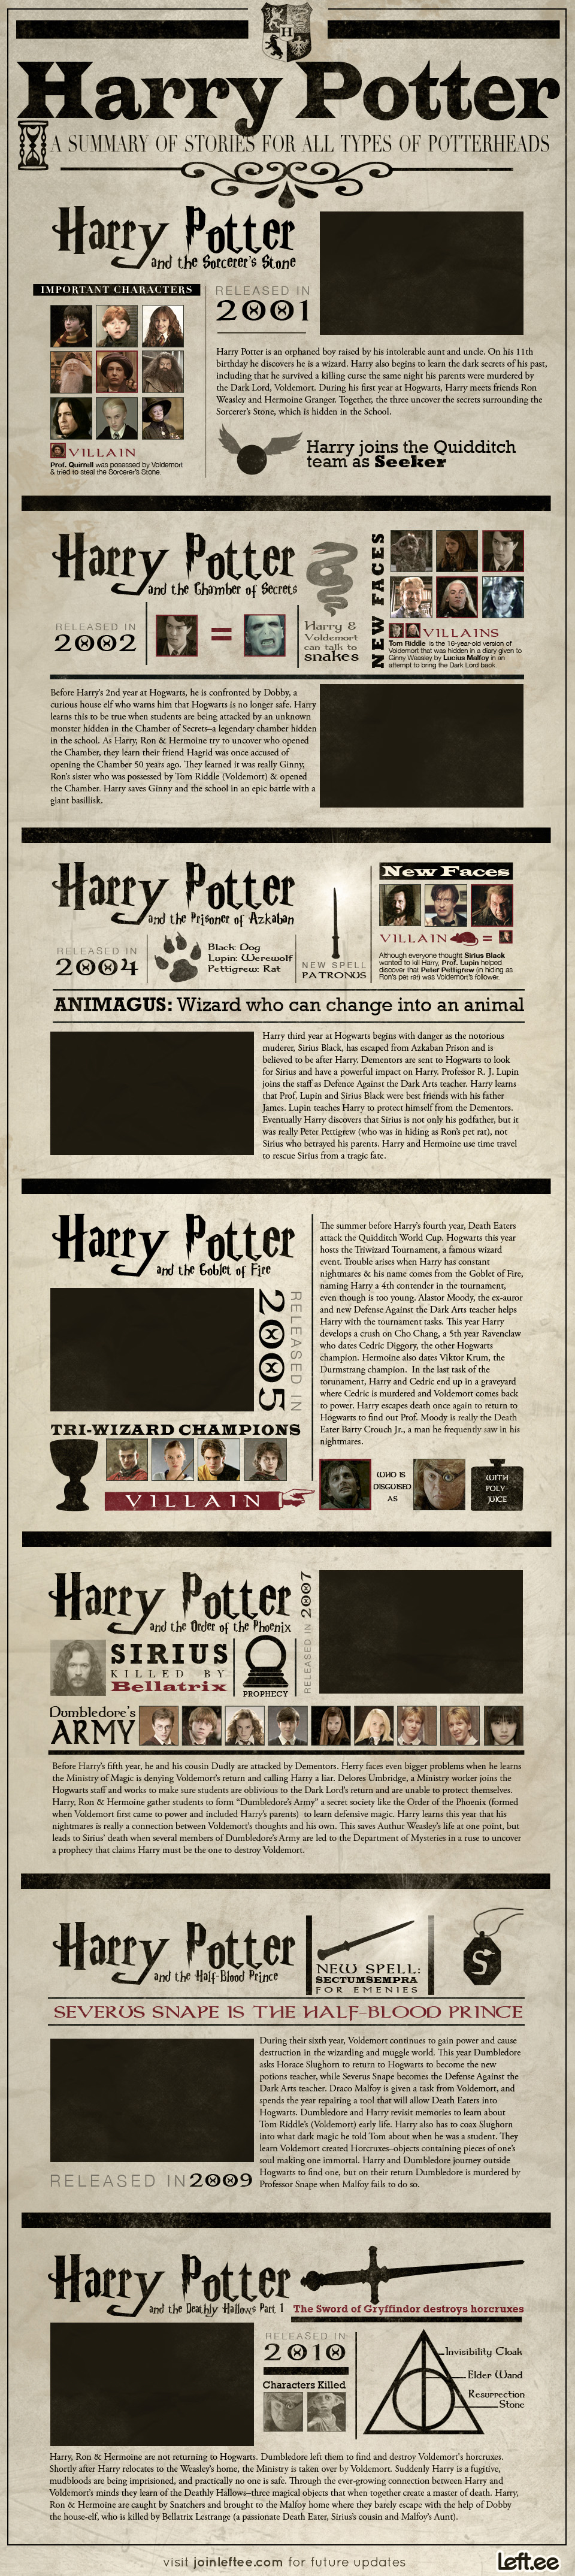 harry potter visual media consumption Remastered versions of lego harry potter: years 1-4 and lego harry potter: years 5-7 will be included in the package when it lands on nintendo switch and xbox one for the first time ever.